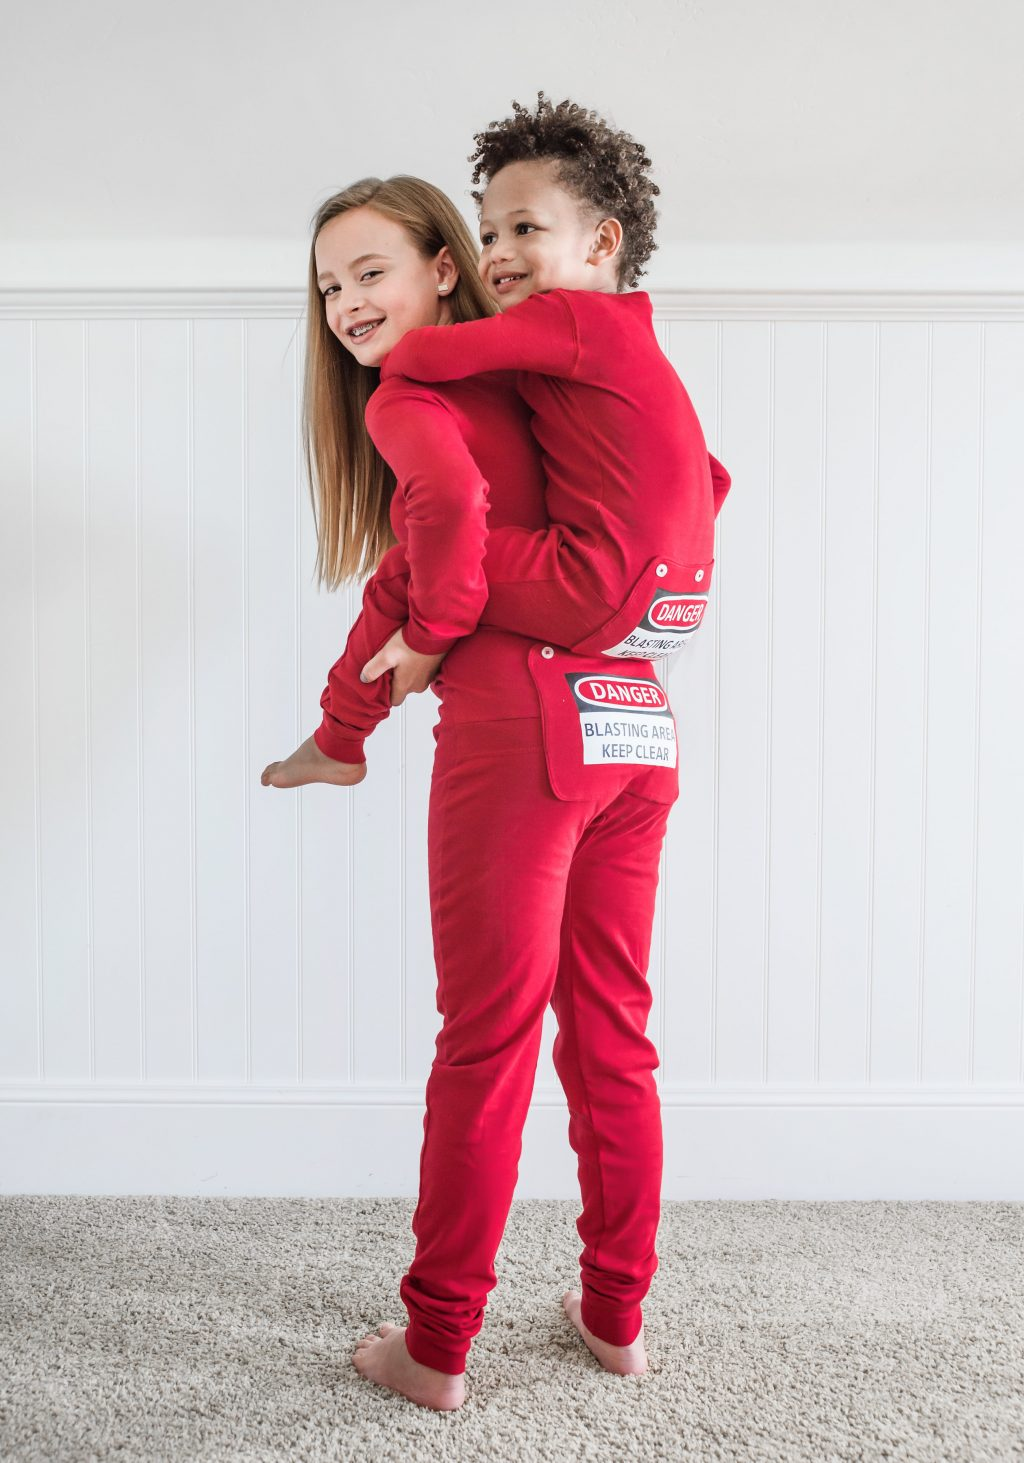 Super soft and warm stretchable rib knit cotton union suit onesie pajamas for boys and girls in youth sizes 4 through 14. For superior comfort these pajamas have flat stitching and tag-free labels. This red one piece pajama, in the classical union suit design, has red snaps for front closure and features a non-functioning 3 button dropseat butt flap that has a printed warning sign that reads: DANGER - BLASTING AREA - KEEP CLEAR. Matching onesie available for adults.